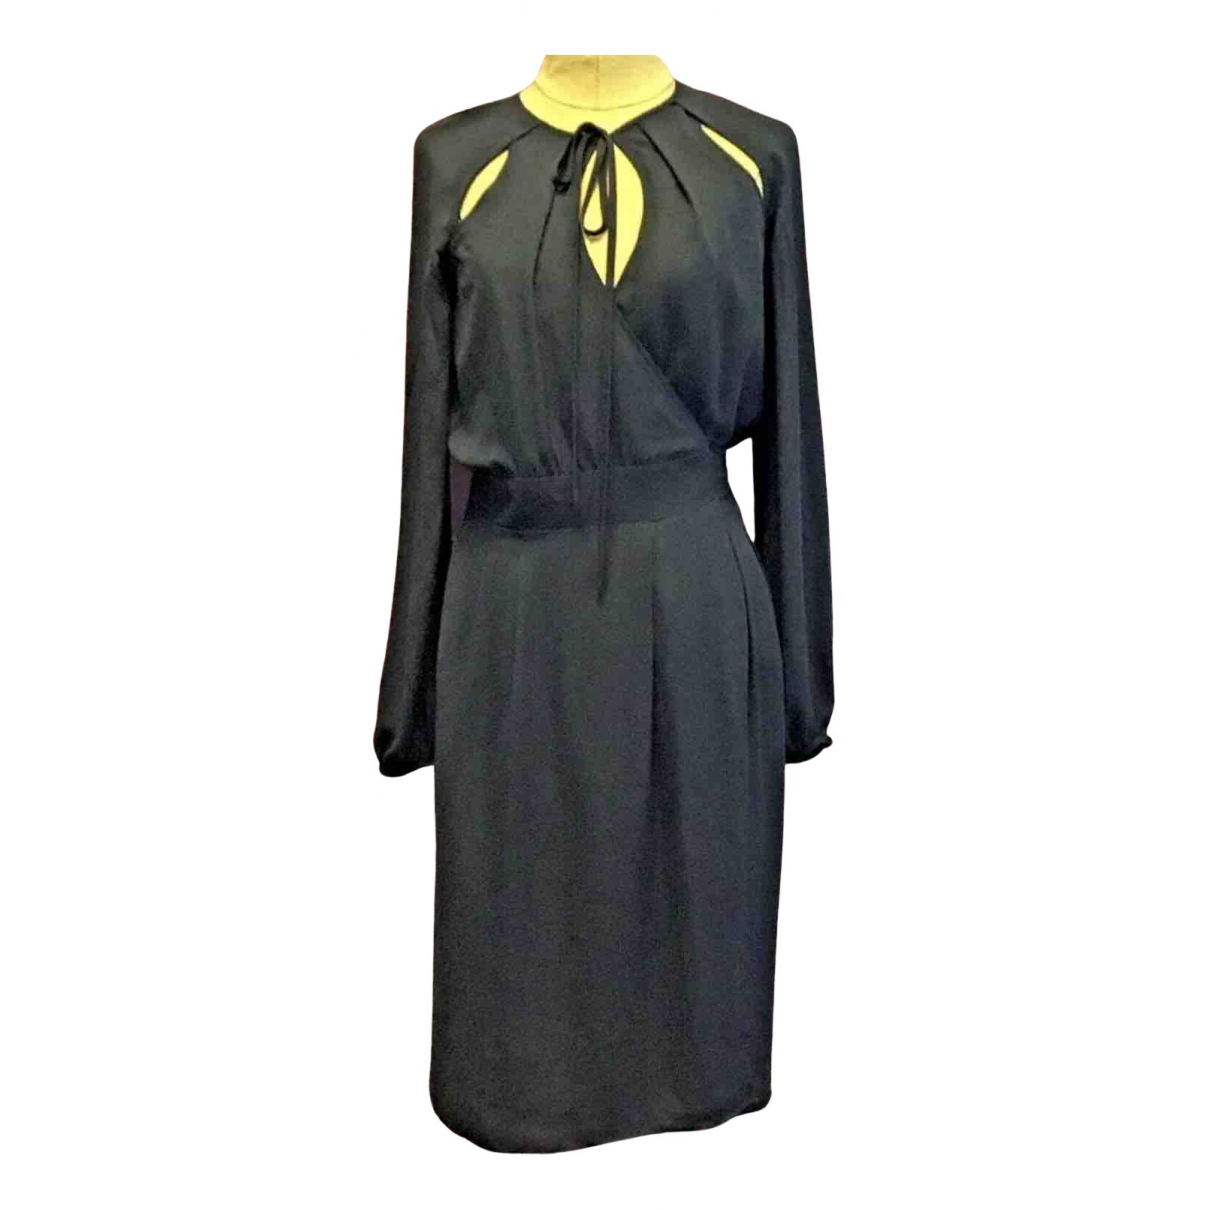 Ossie Clark N Black dress for Women 8 UK